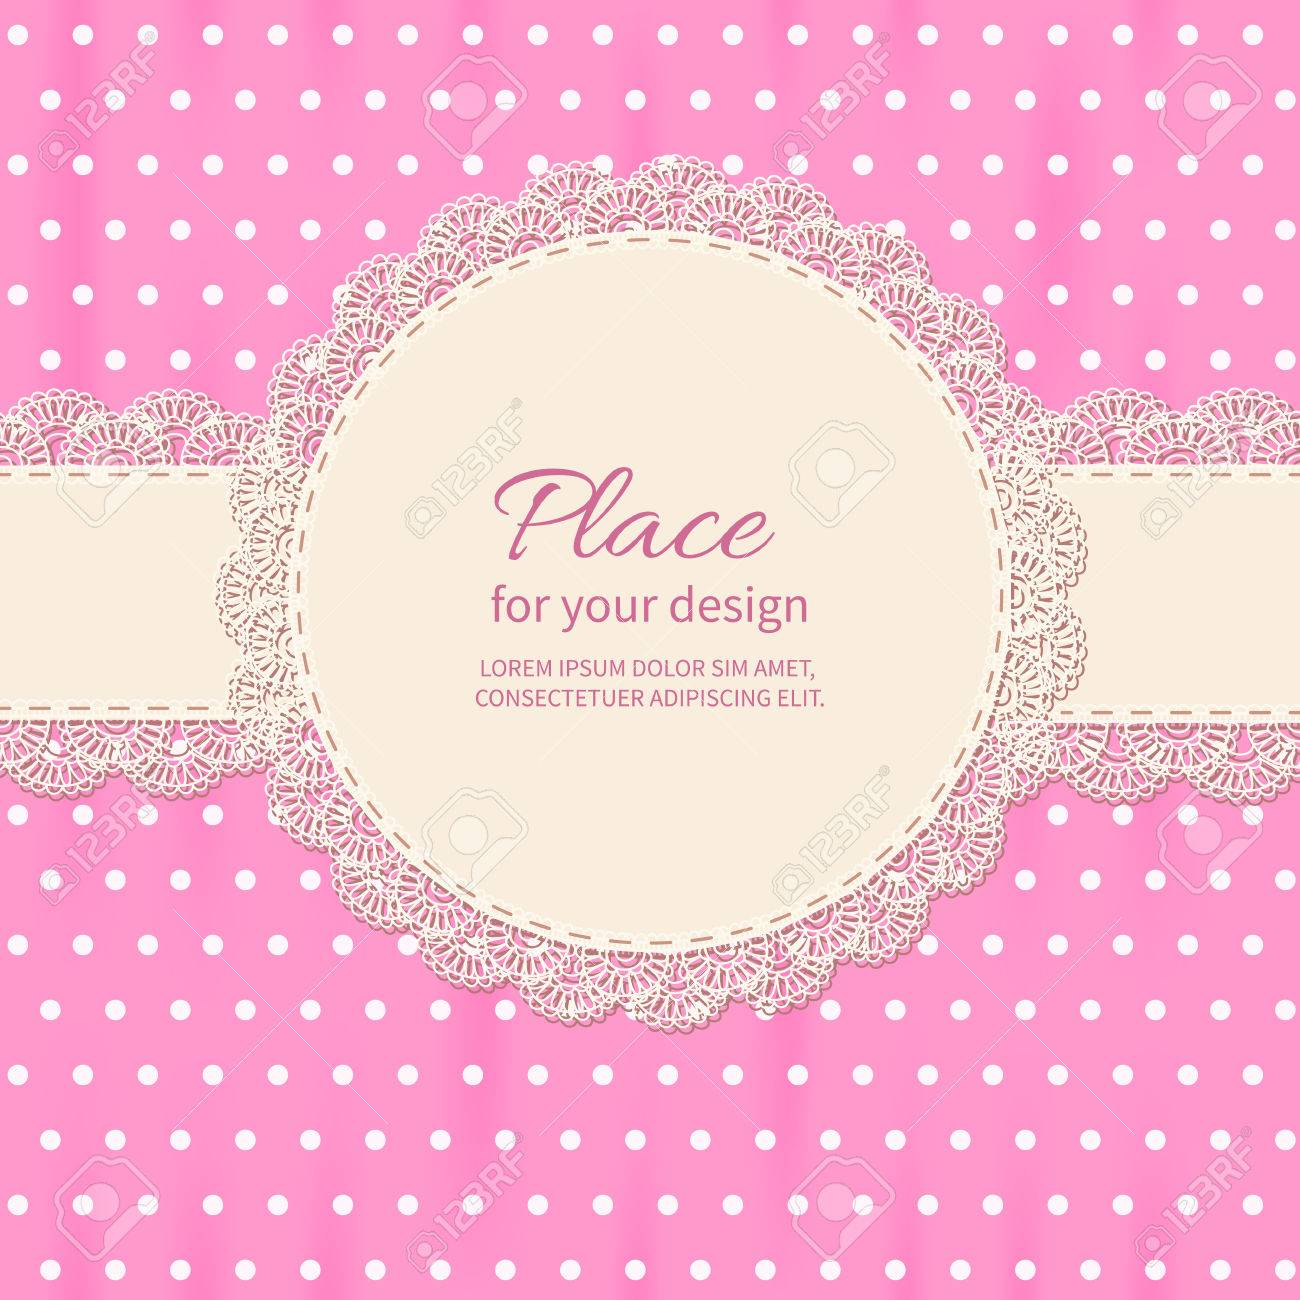 Retro Background With Lace And Polka Dot Wallpaper Baby Shower Royalty Free Cliparts Vectors And Stock Illustration Image 45243666